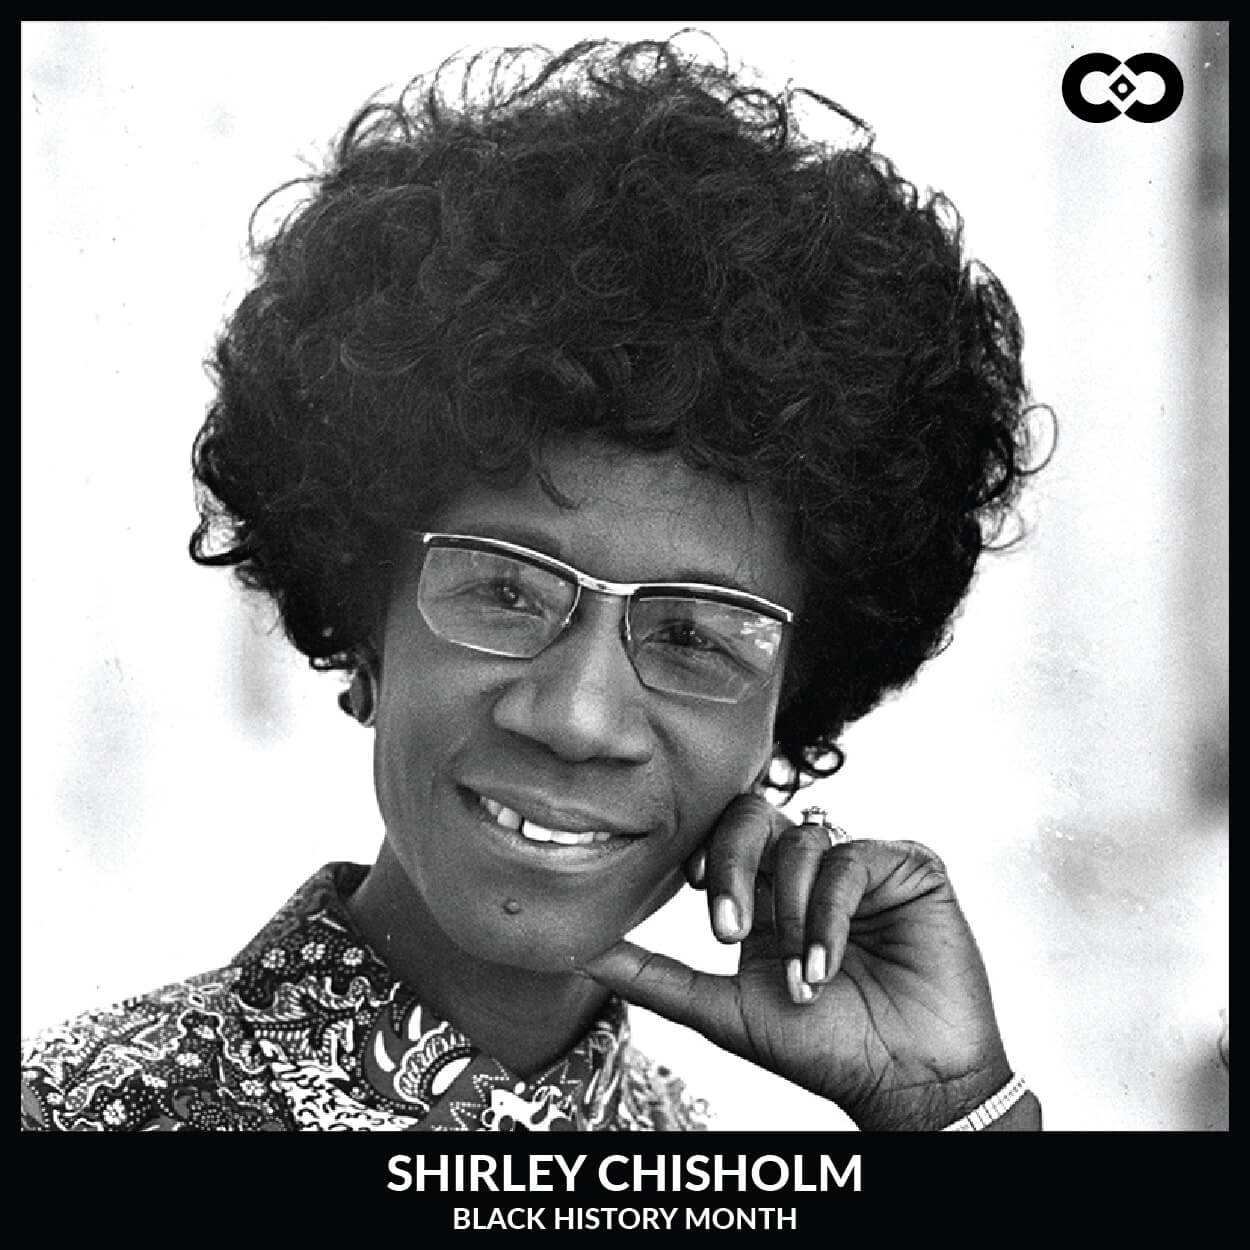 Shirley Chisholm - Black History Month: Powerful Women Who Changed the World - Cowe Communications